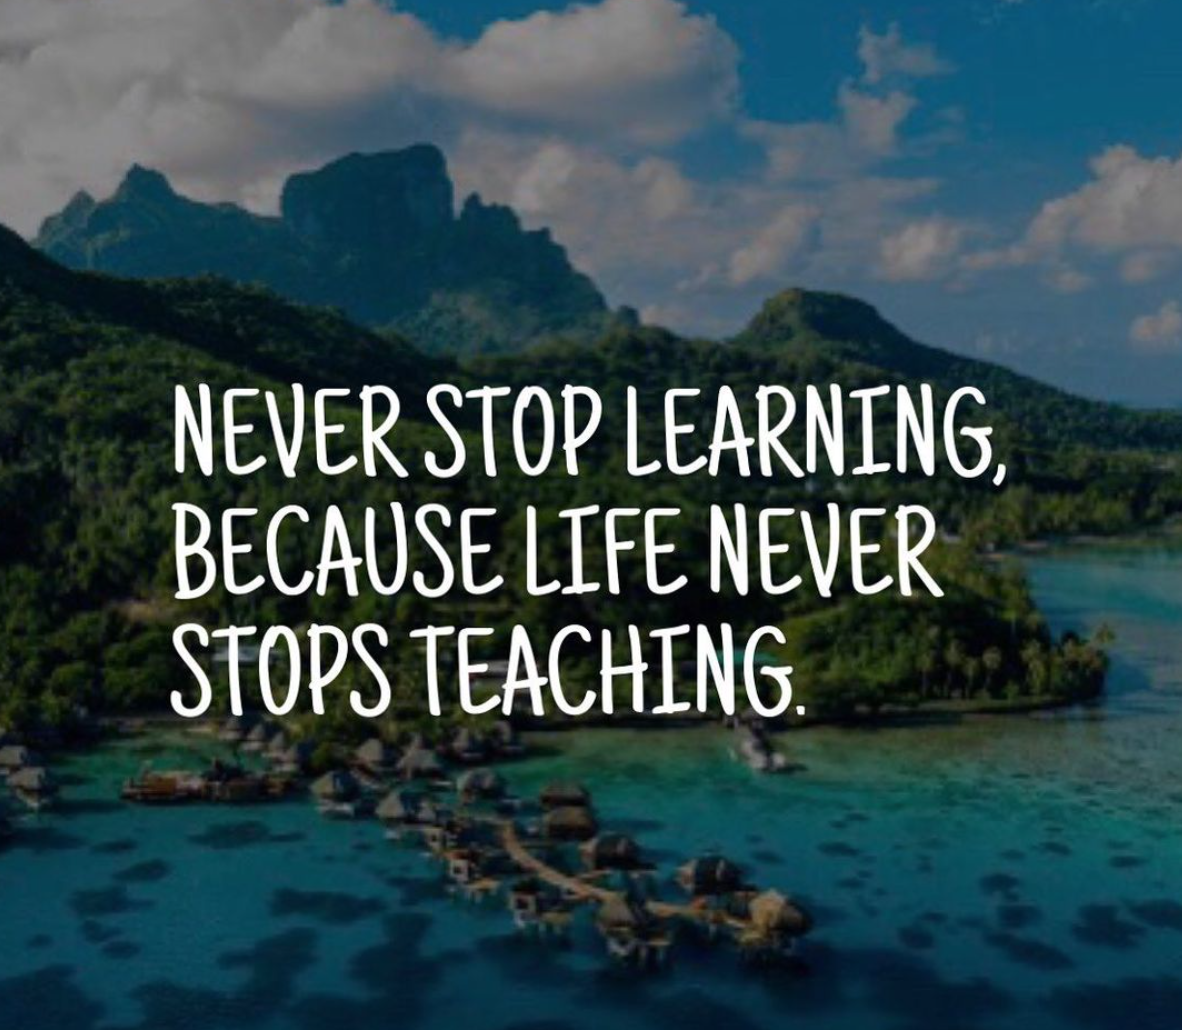 [Image] Never stop learning, because life never stops teaching